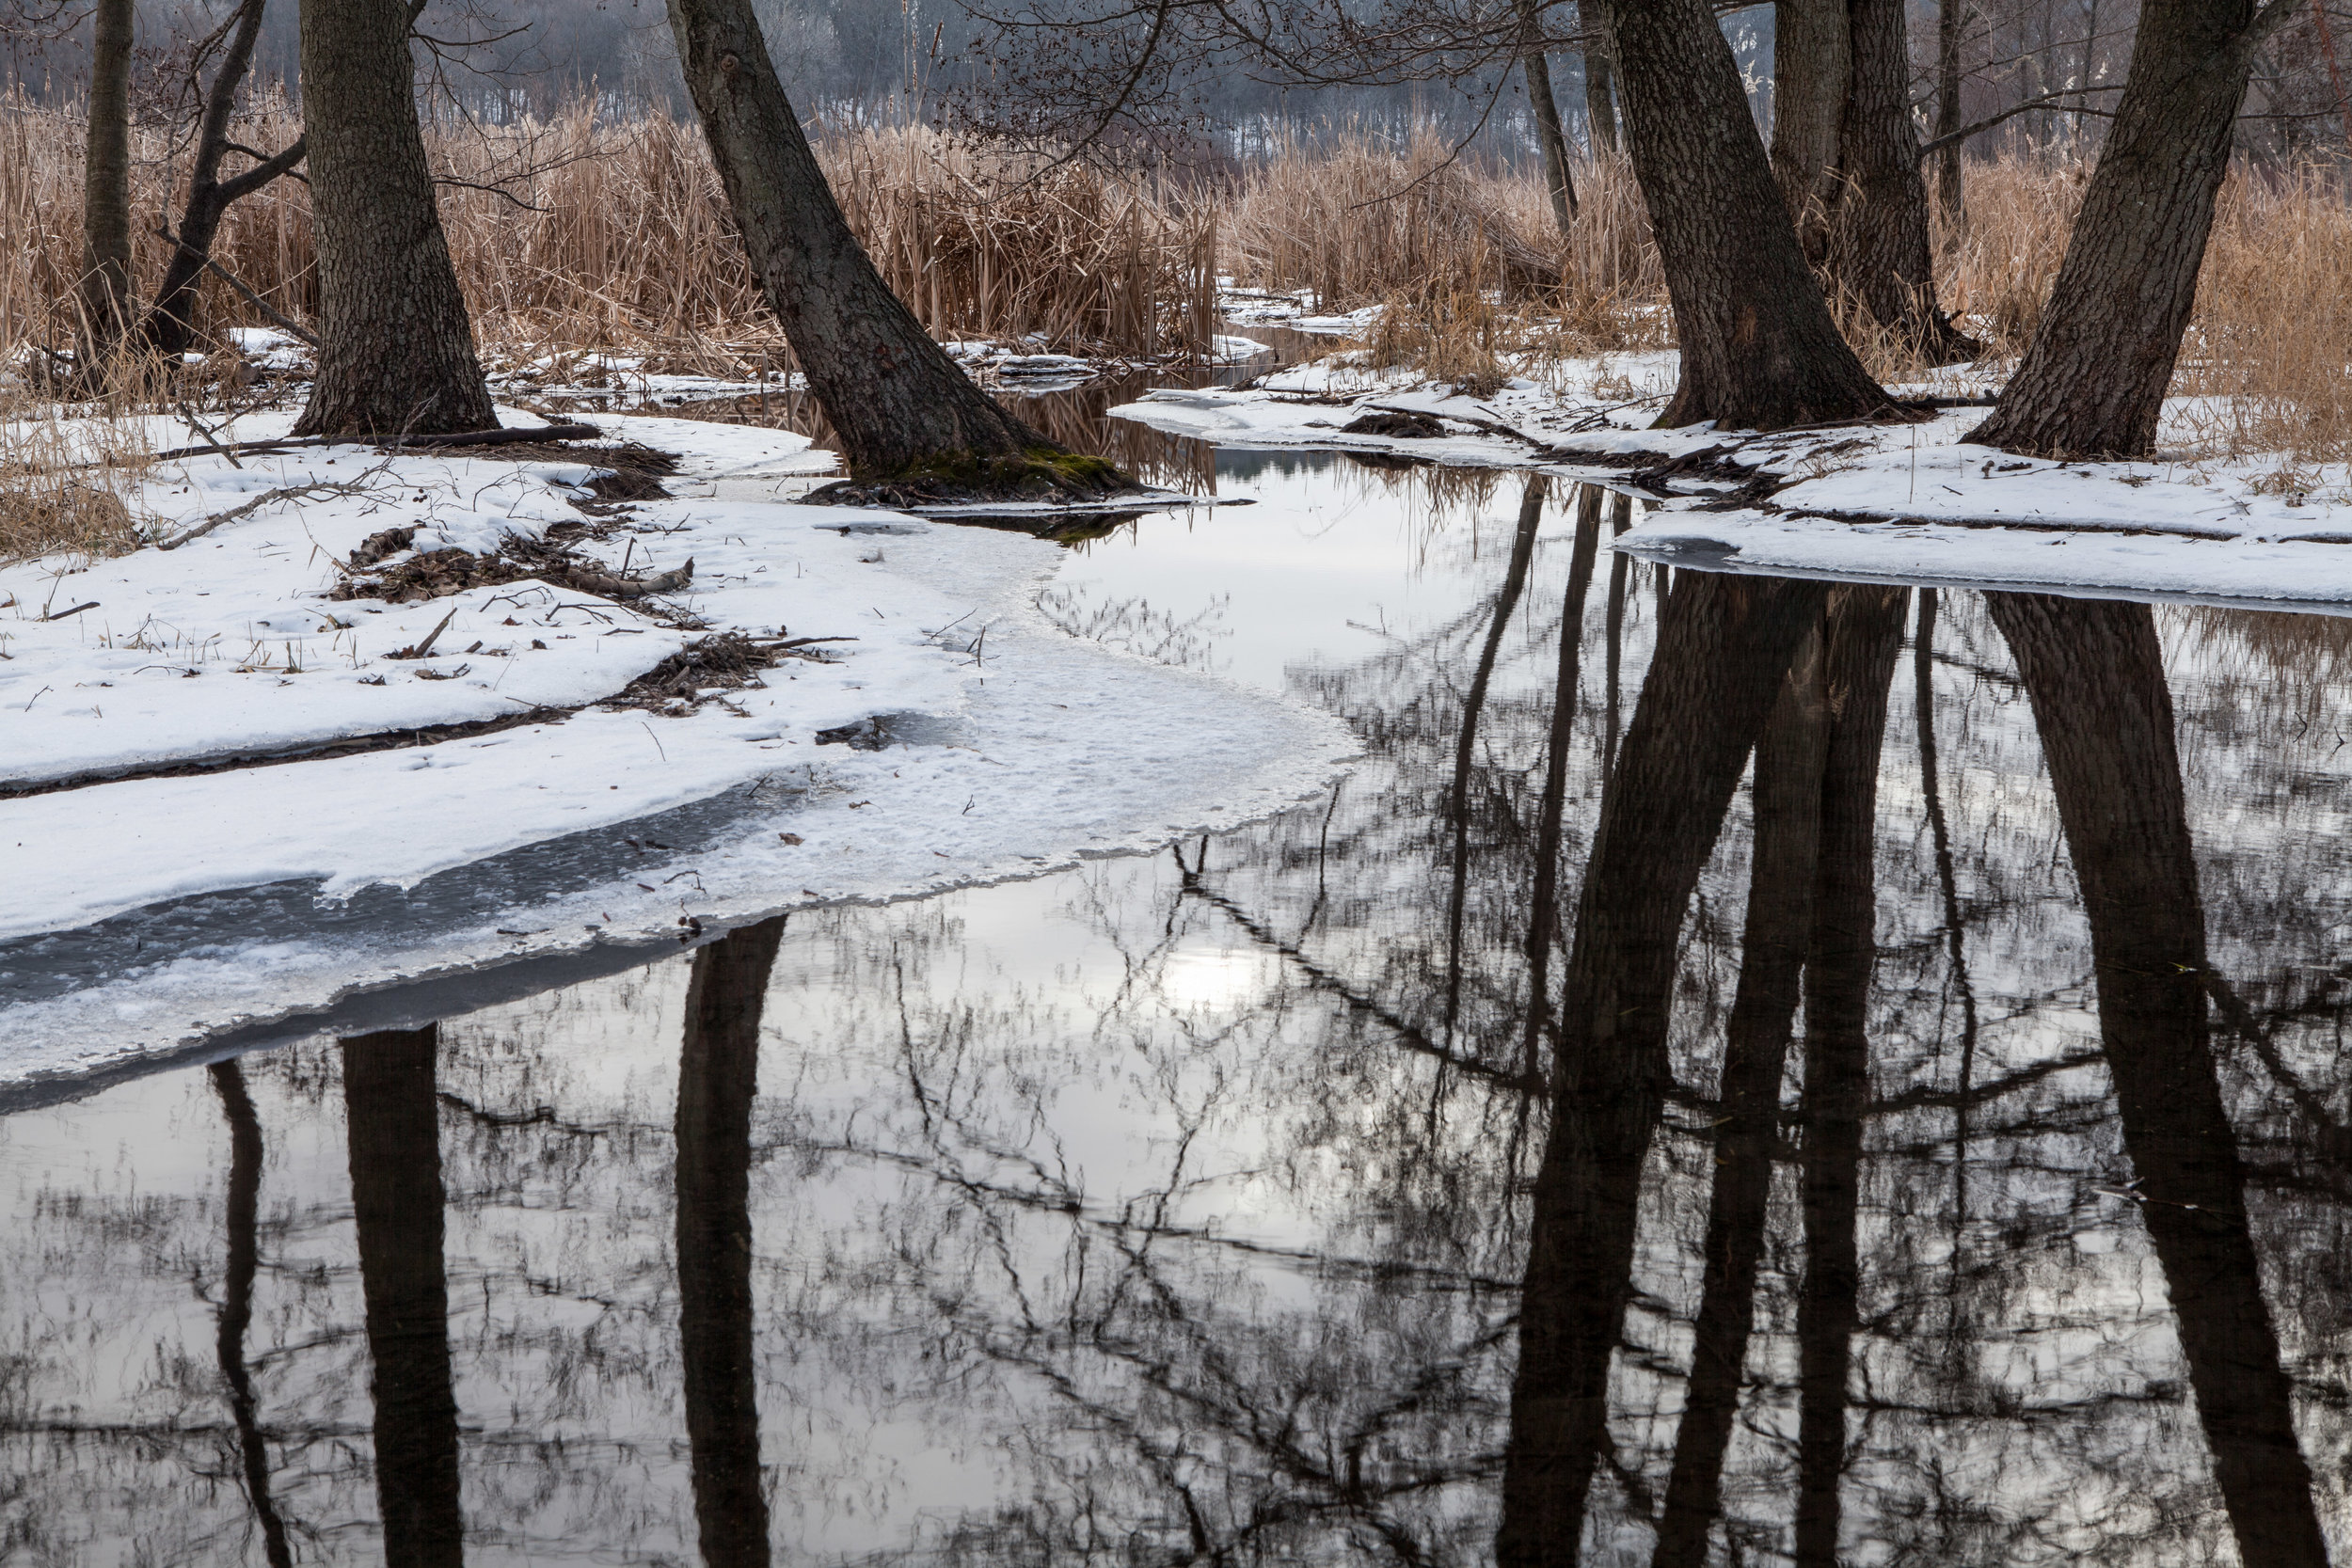 Name for Tree Reflections on Open Water in Winter